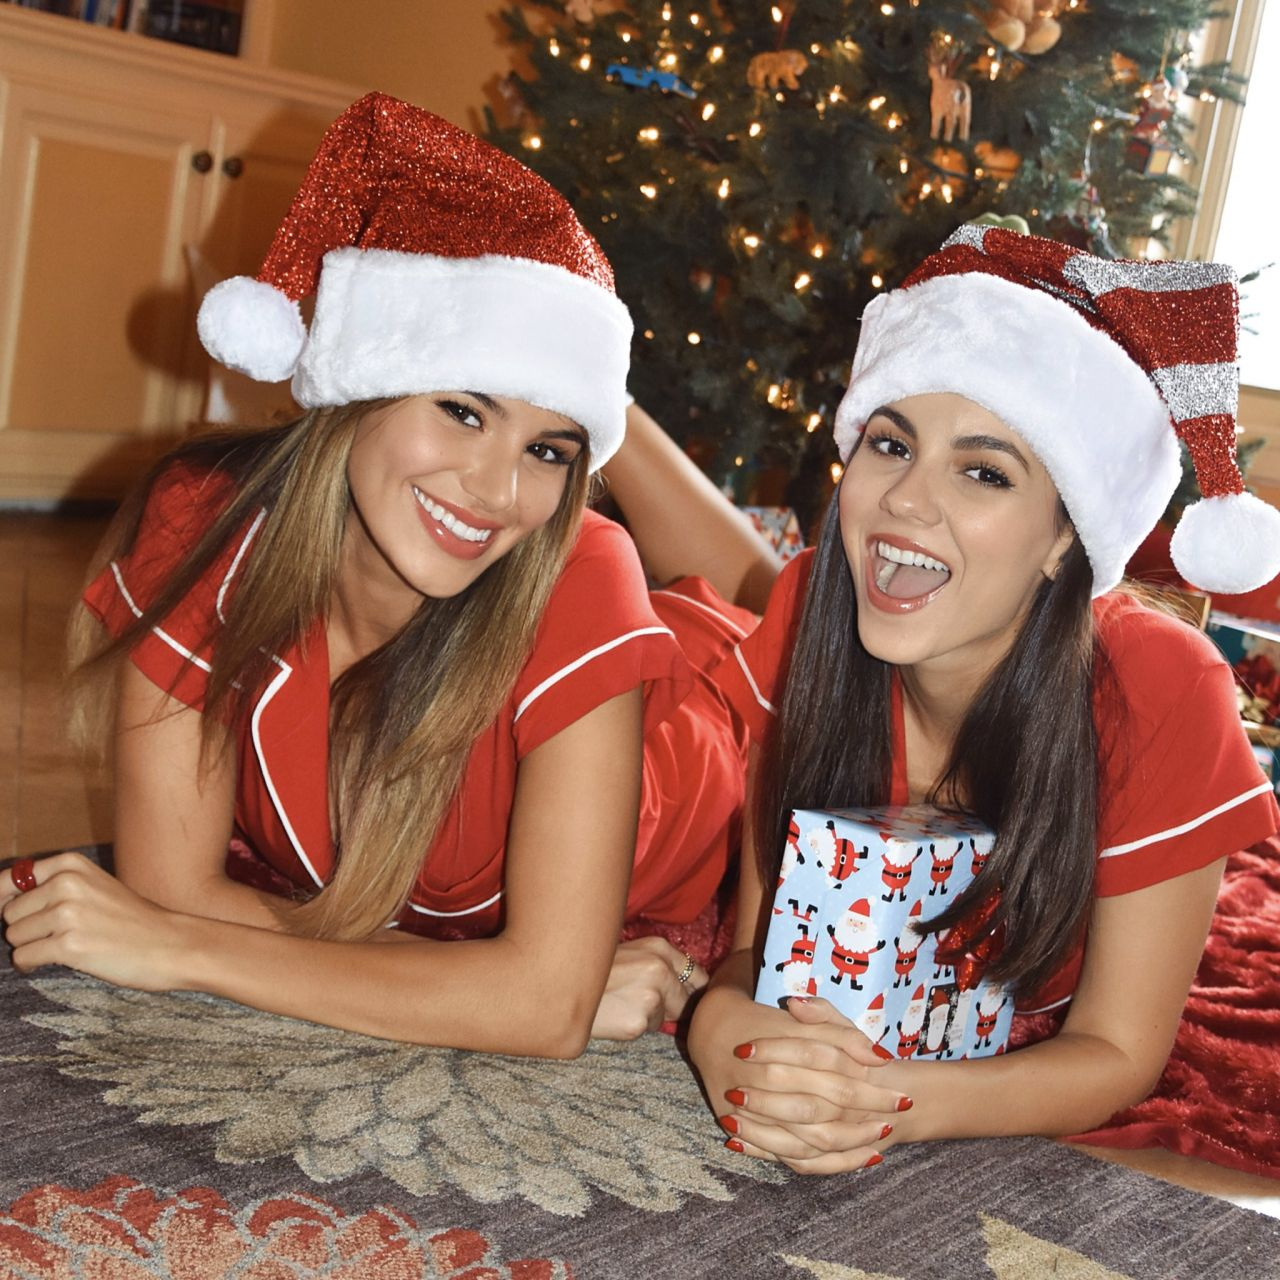 Victoria Justice and Madison Reed - Social Media 12/28